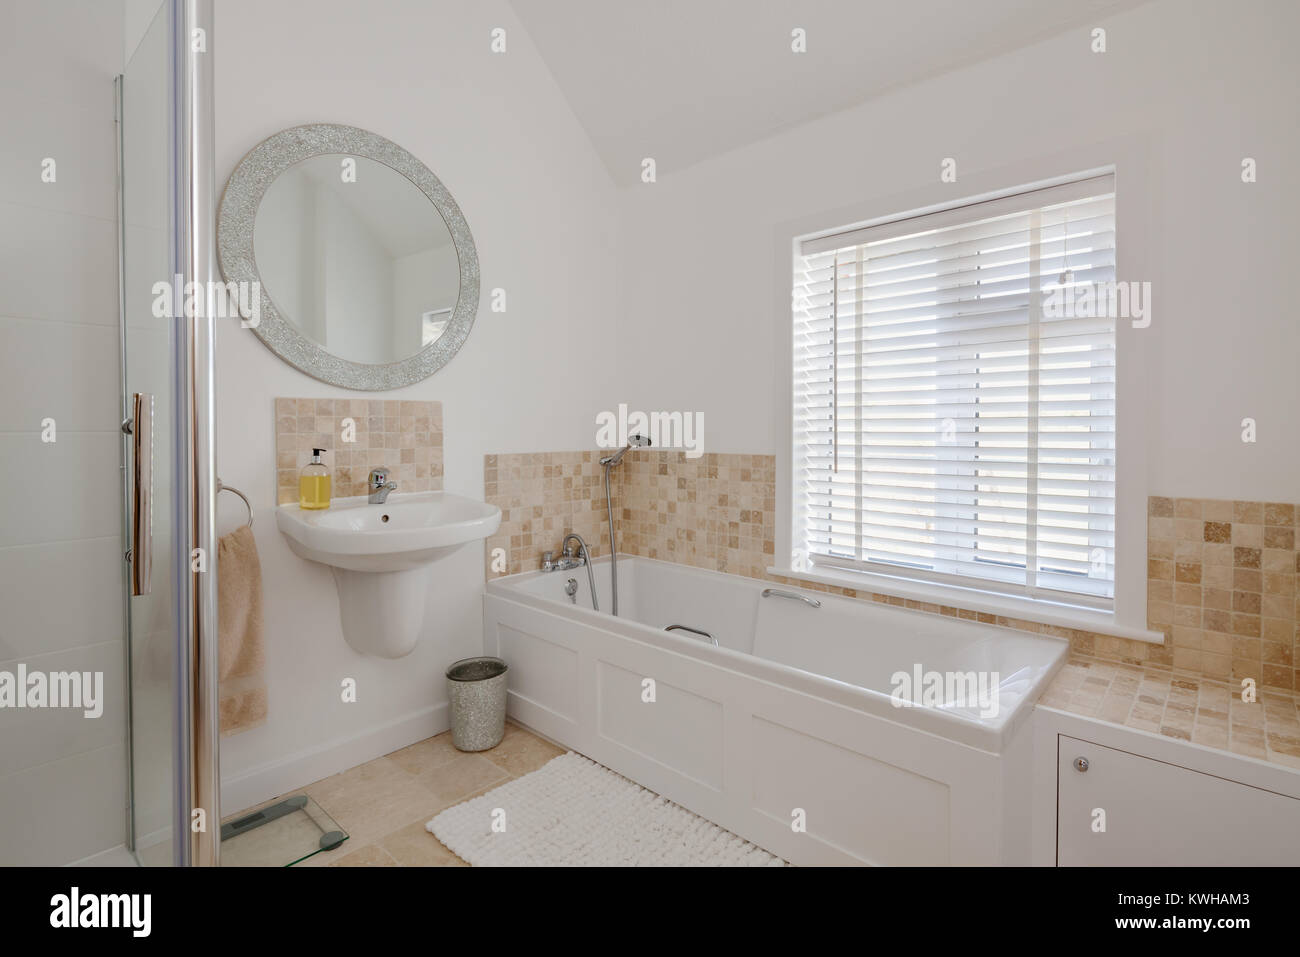 Bathroom with circular window immagini bathroom with - Vasca da bagno circolare ...